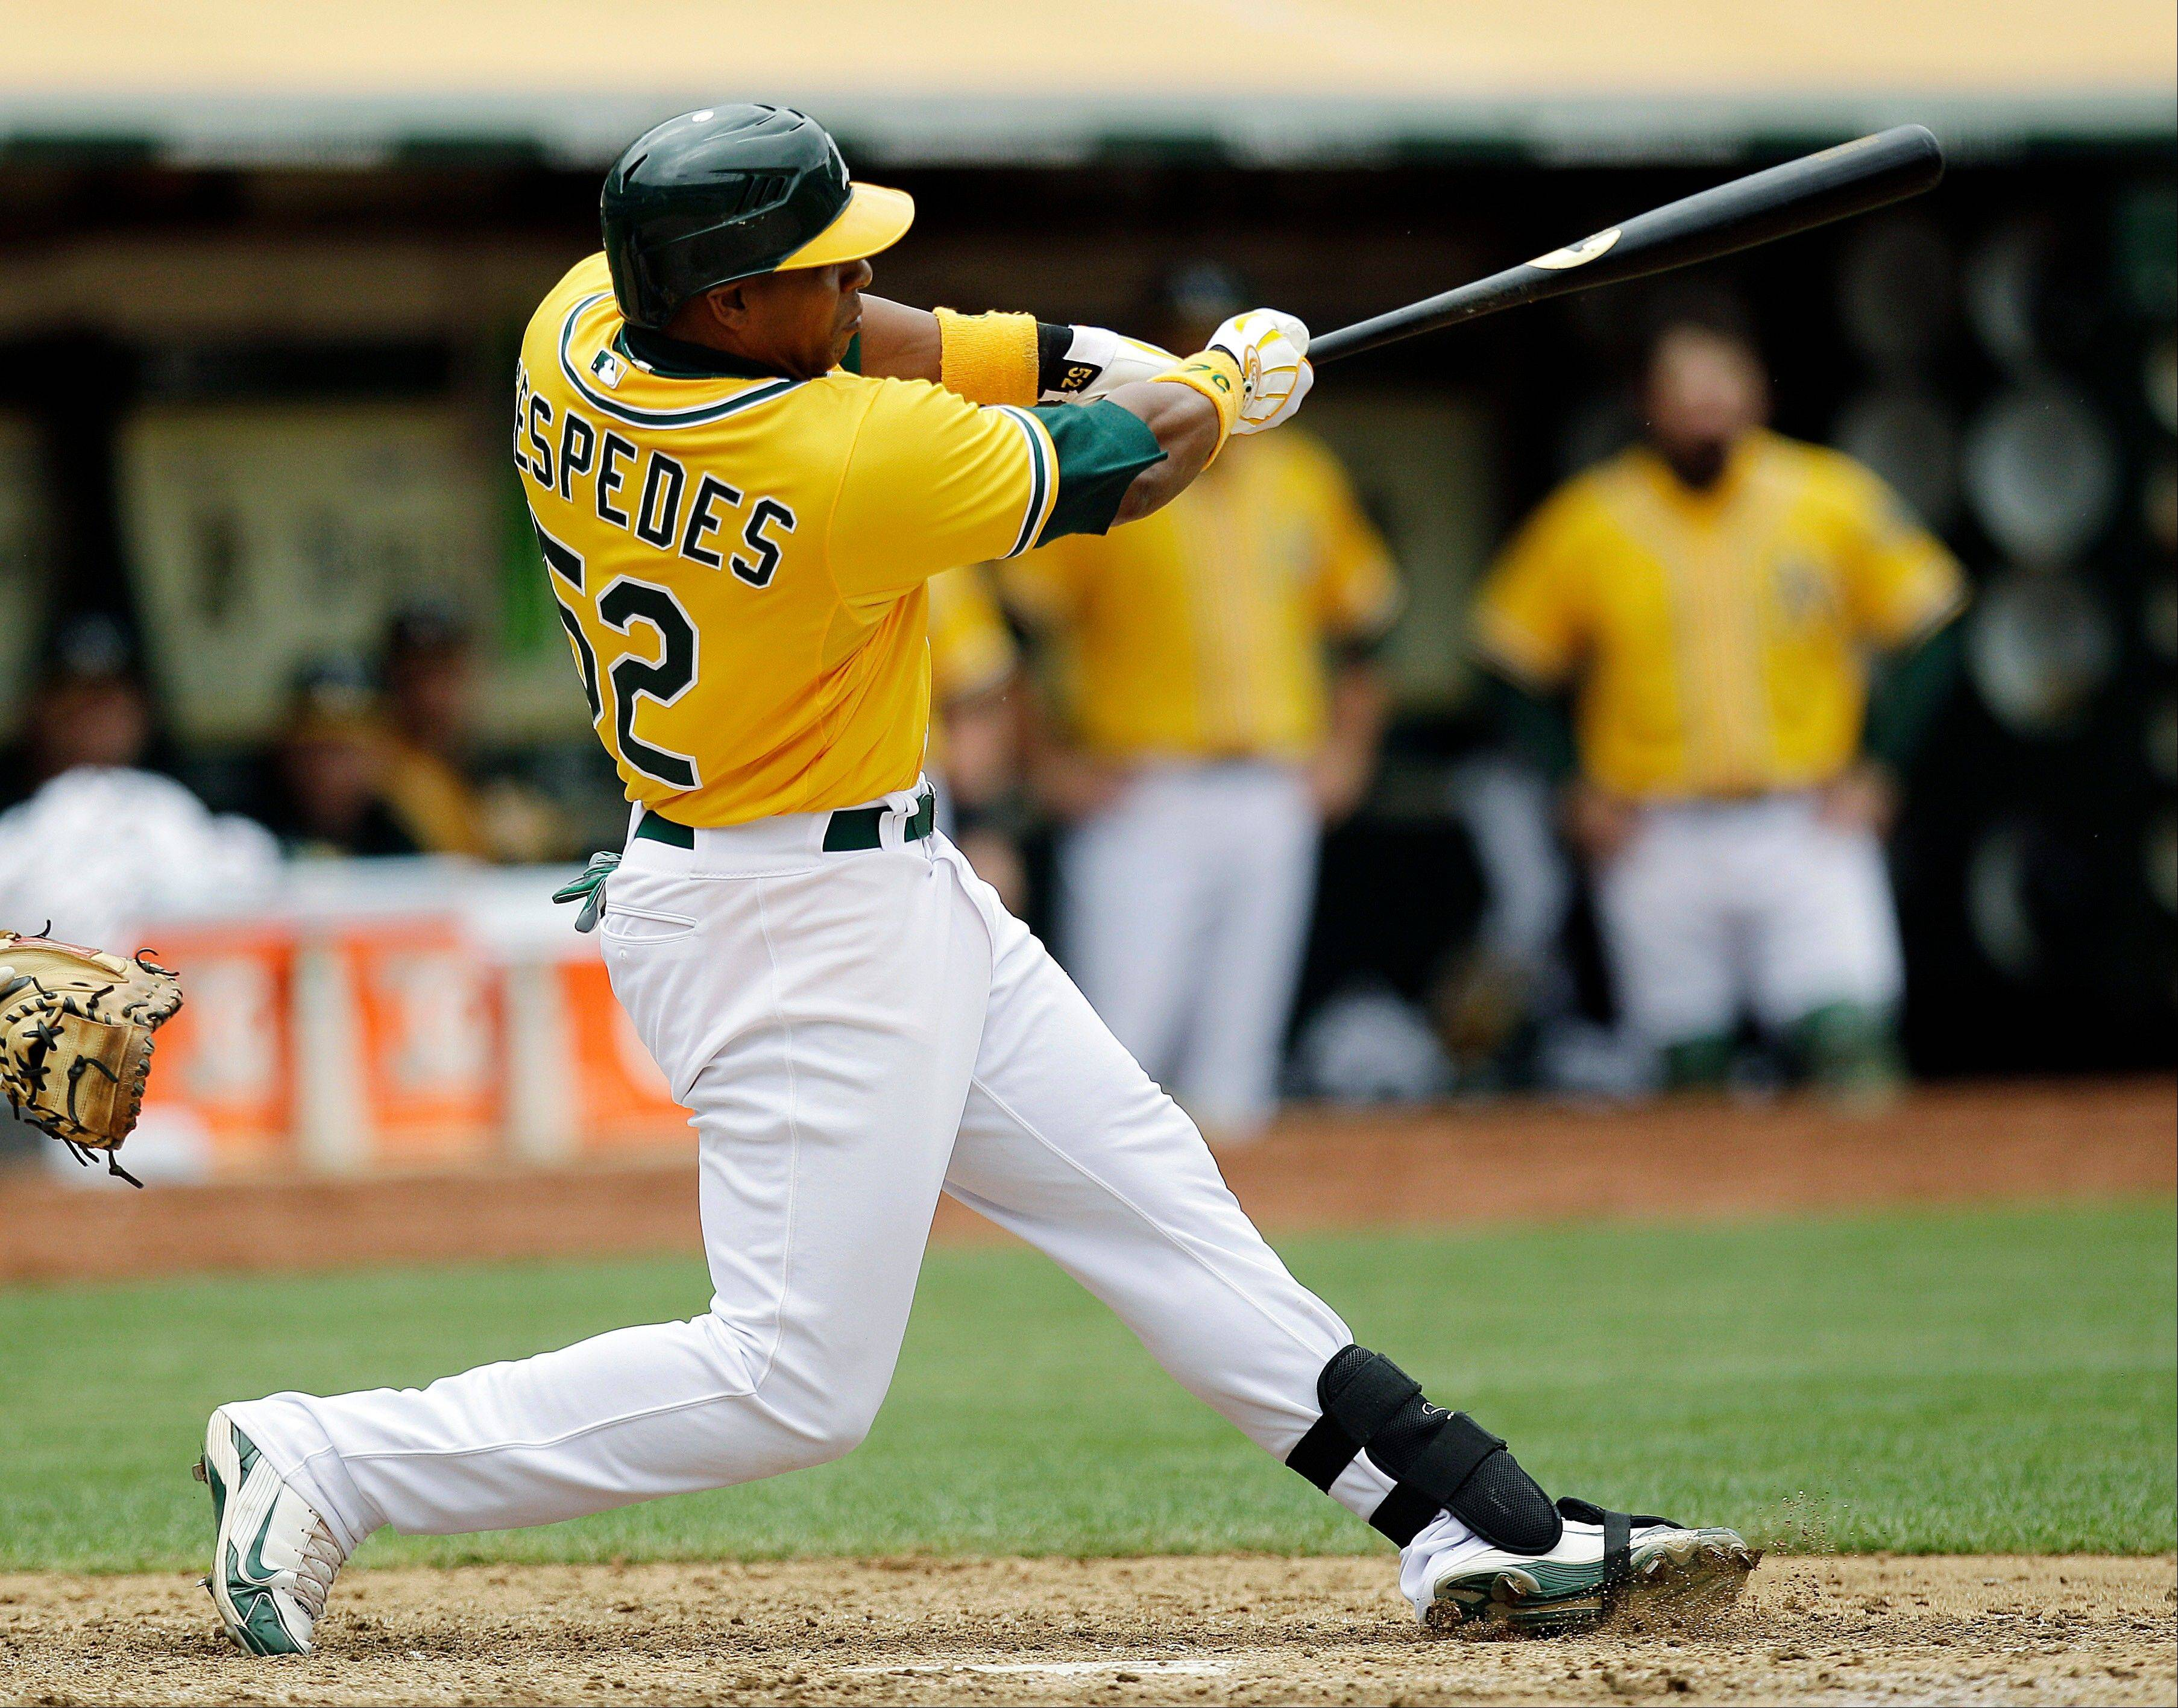 The Oakland Athletics' Yoenis Cespedes hits a walk-off, three-run home run off Los Angeles Dodgers pitcher Josh Lindblom Thursday during the ninth inning in Oakland, Calif. The Athletics won 4-1.